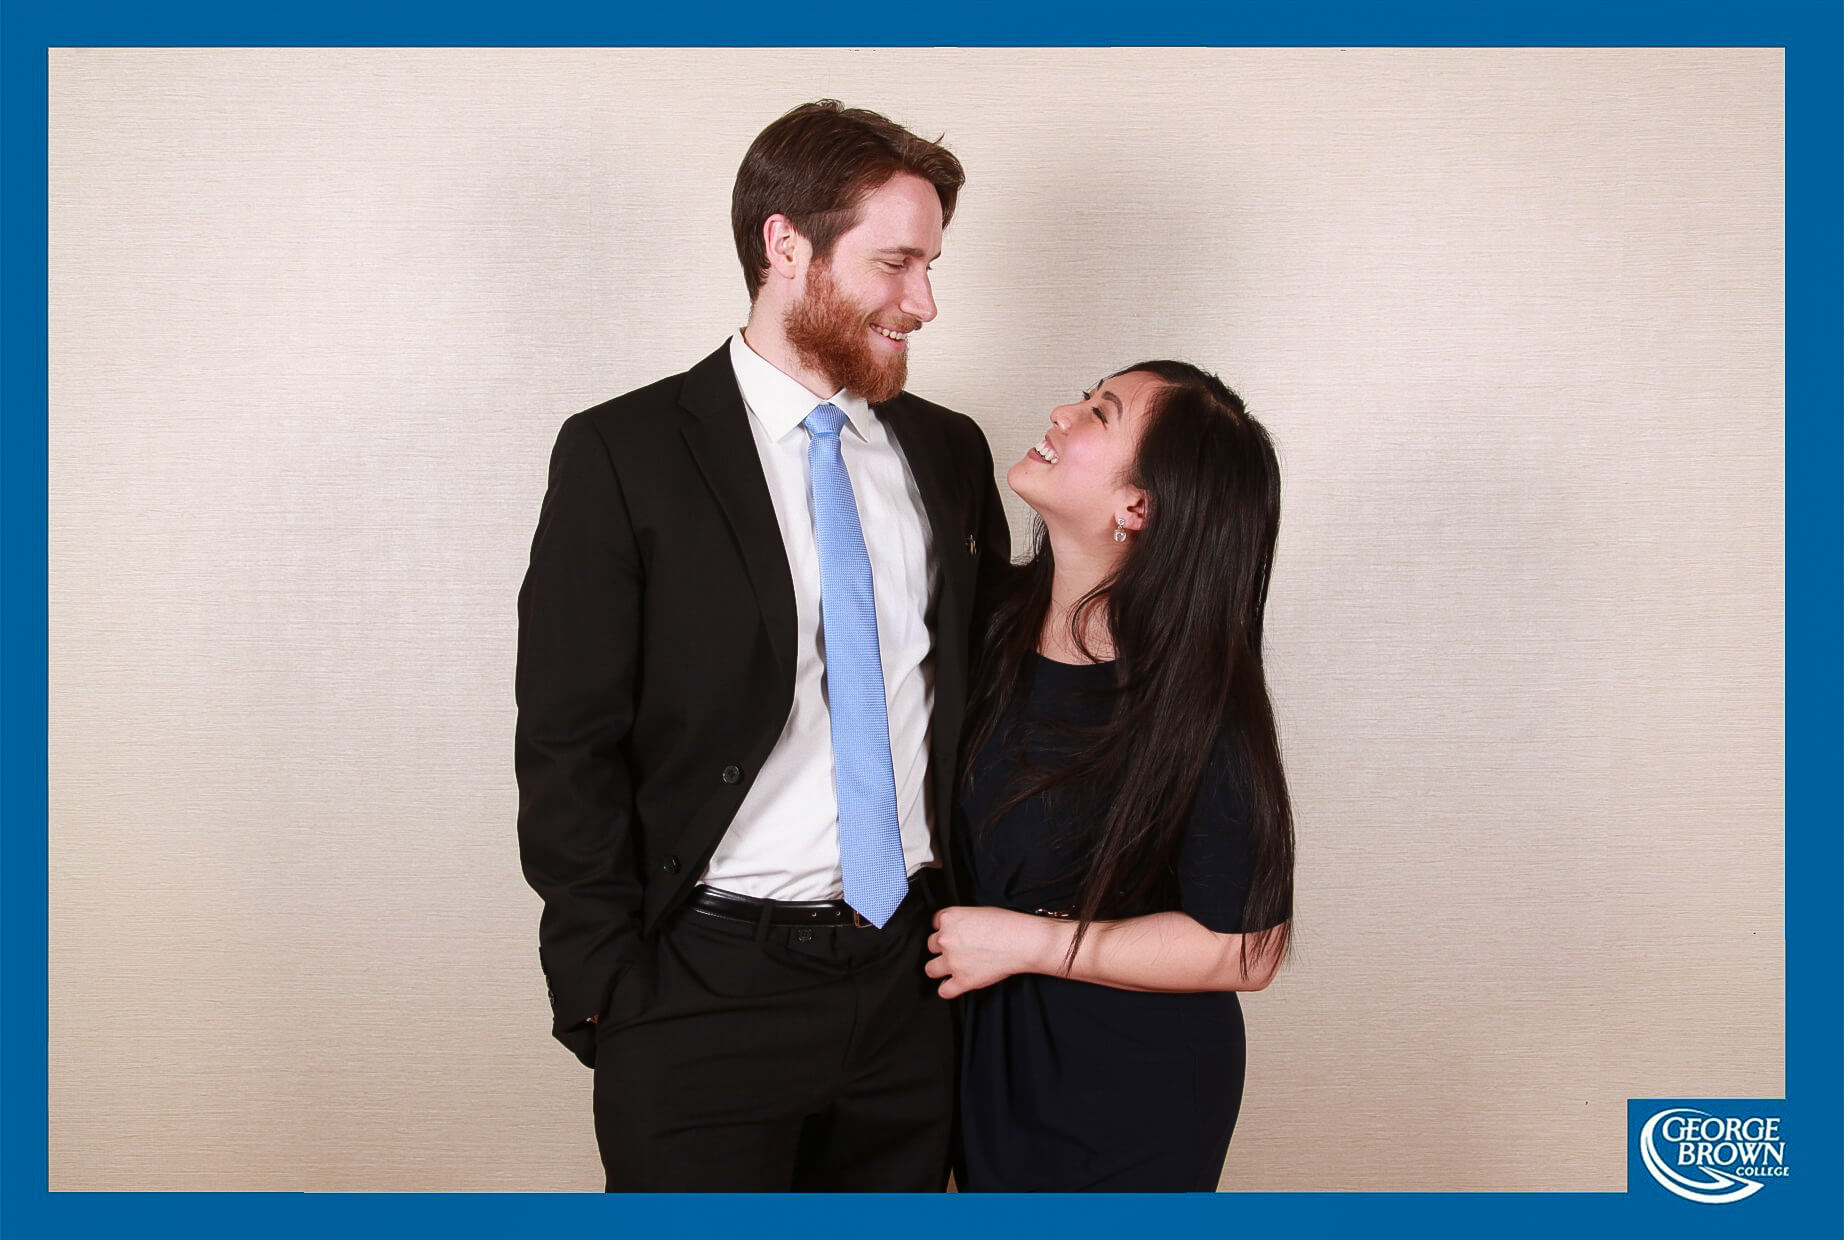 Toronto George Brown Corporate Photo Booth Rental 10